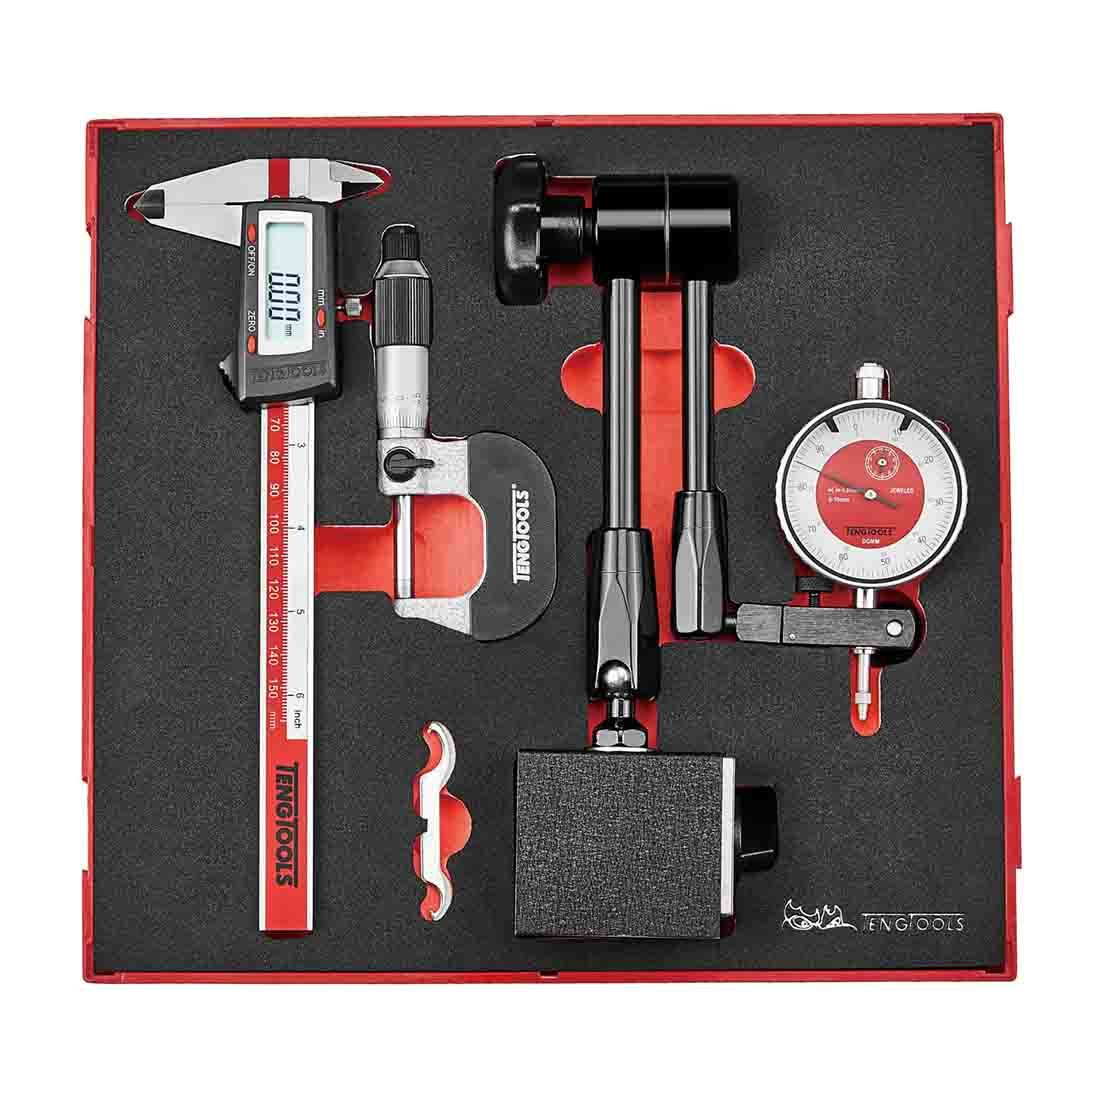 Teng Tools EVA Measuring Tool Set 3 Piece